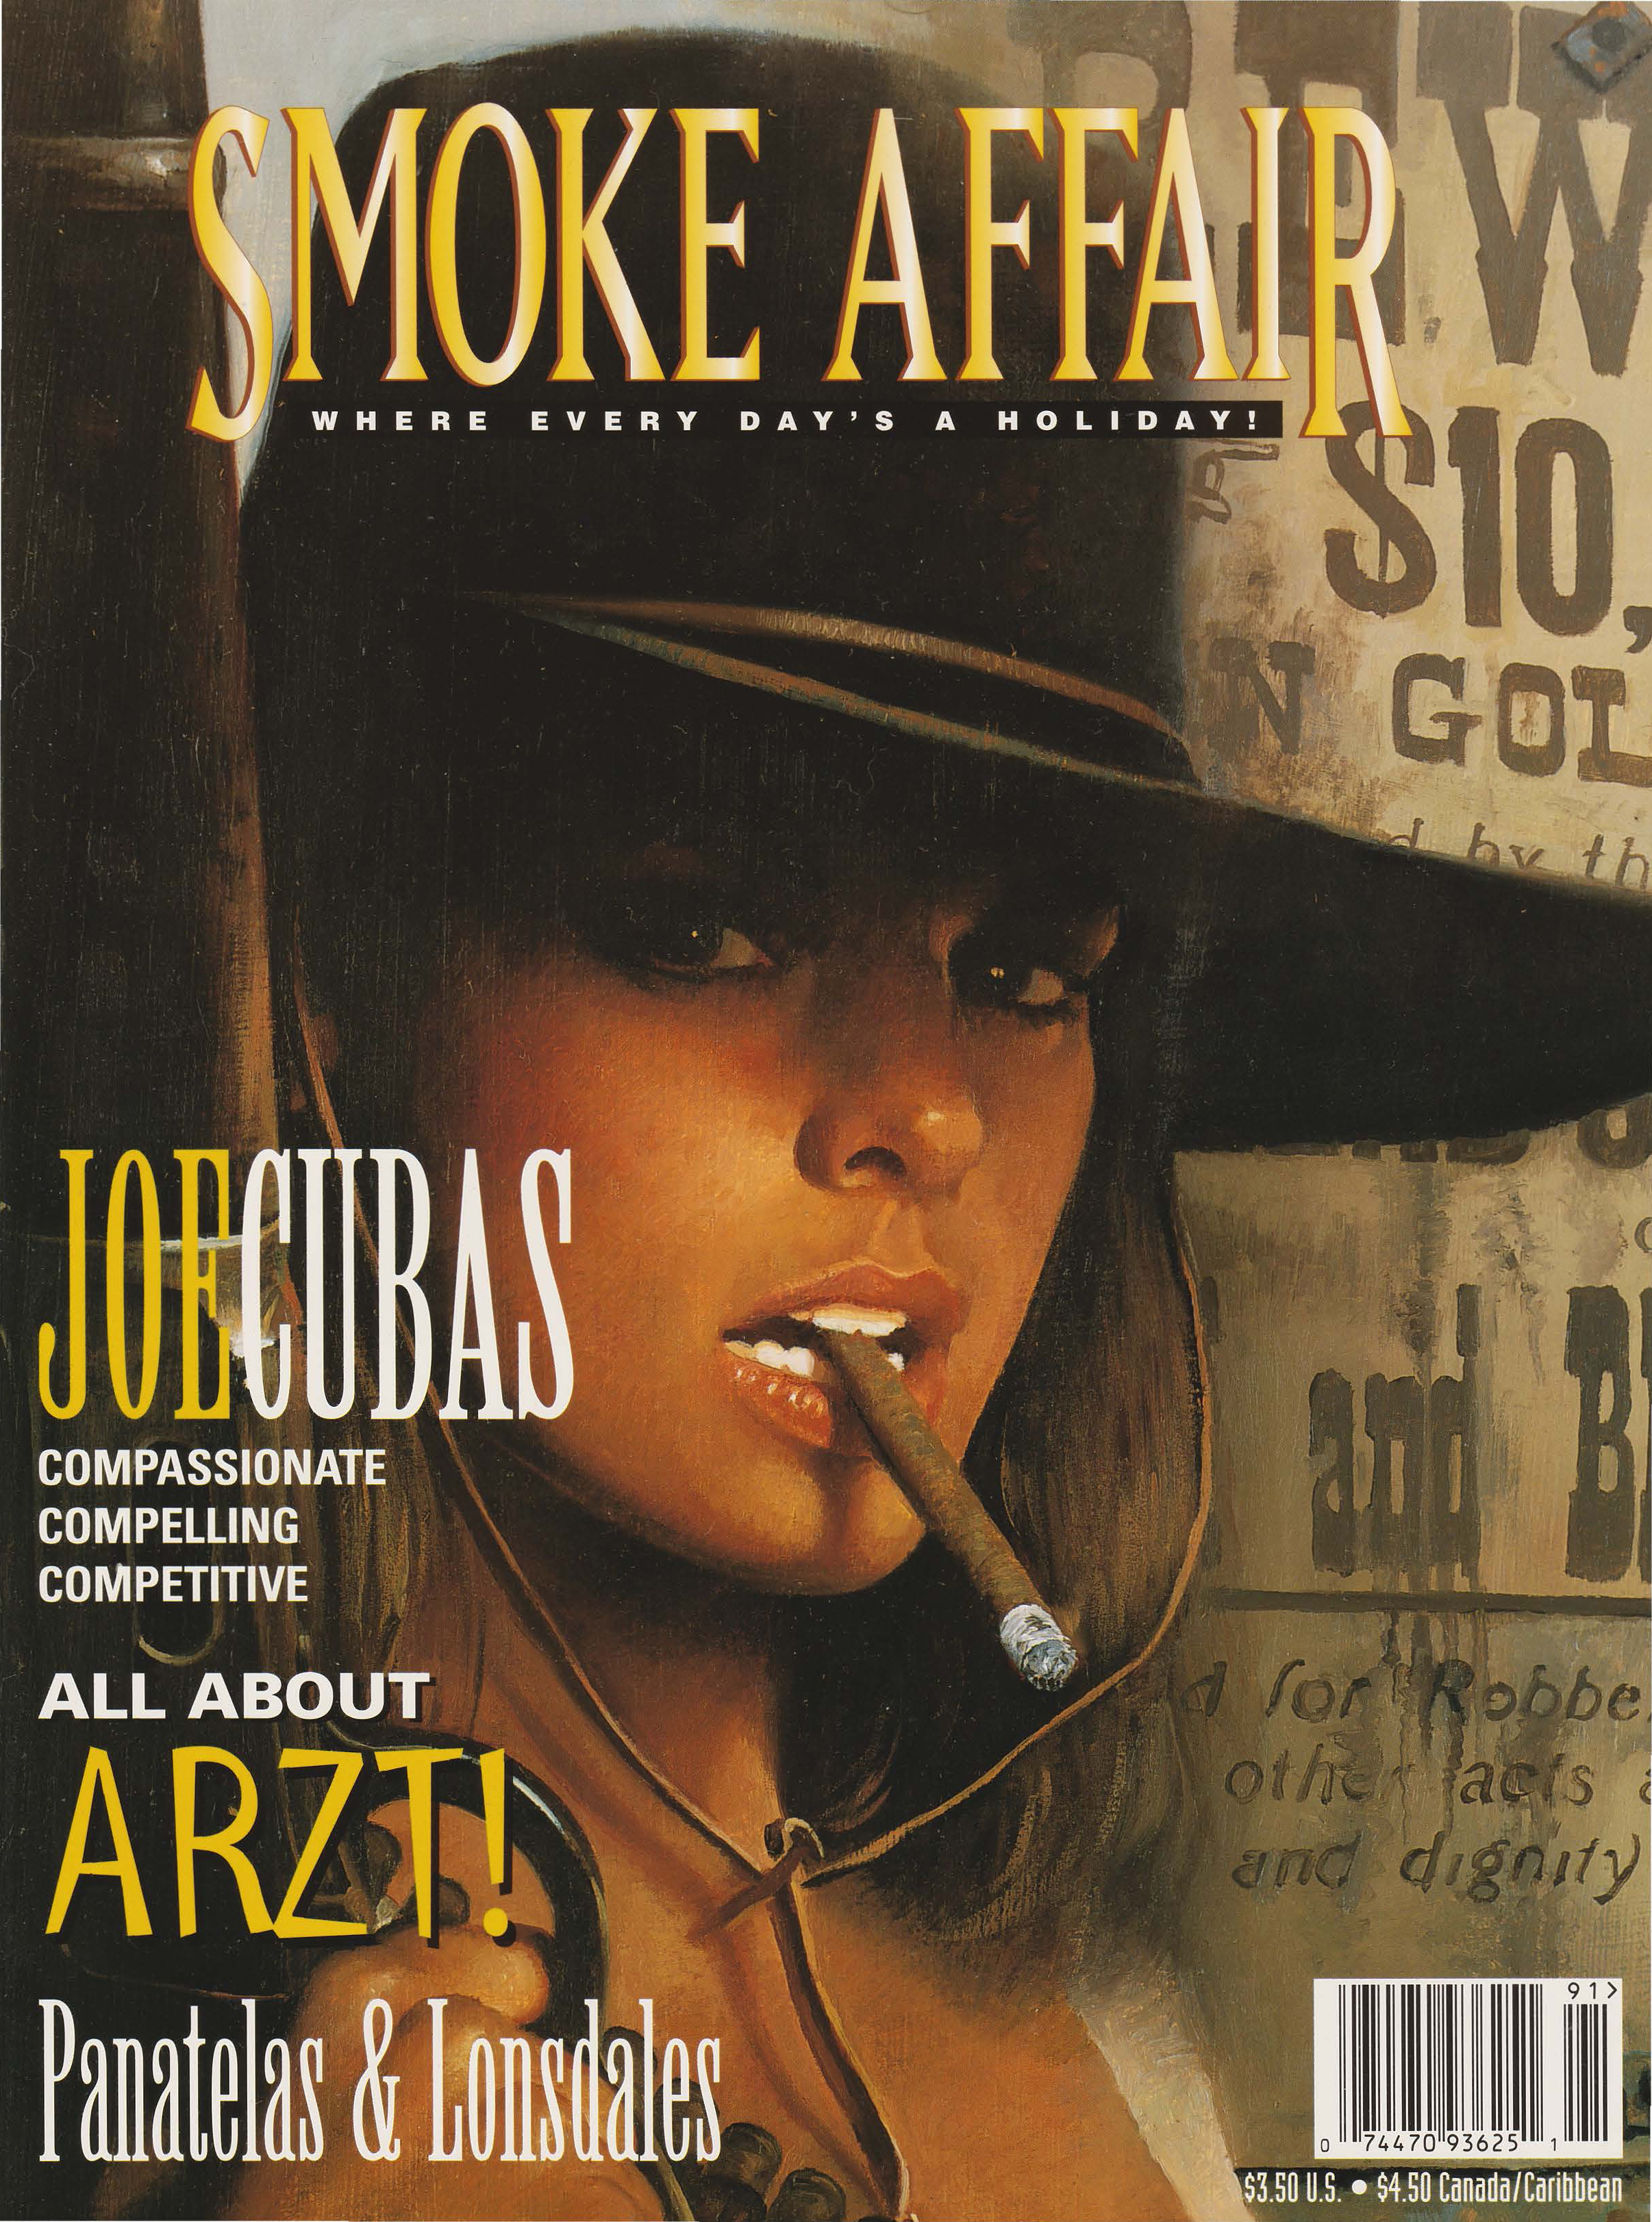 Smoke Affair cover art by Ron Lesser - c2003